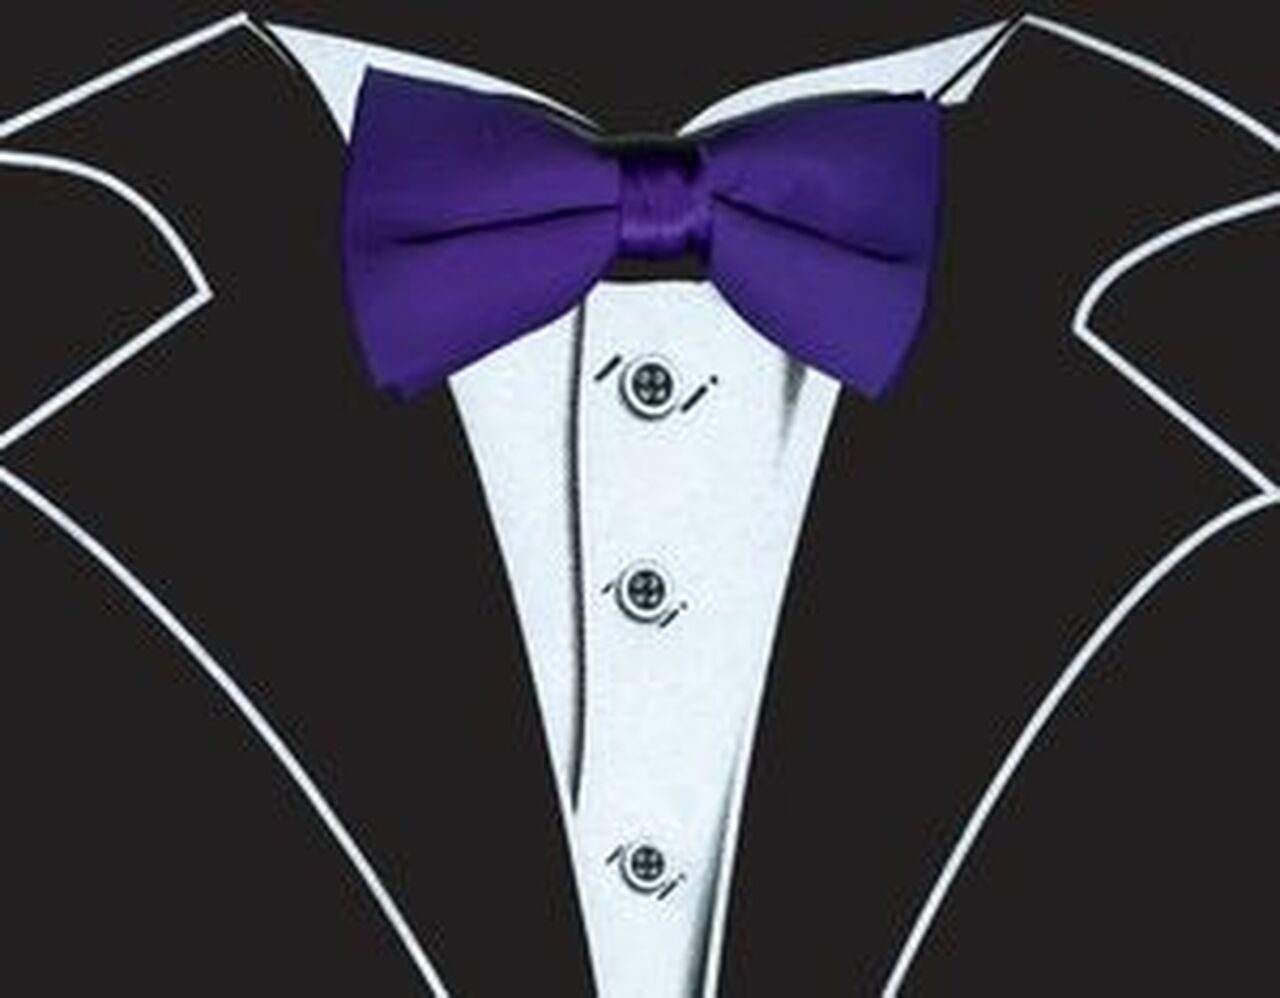 Tuxedo T Shirt In Black With Real Purple Bow Tie Shop Men S